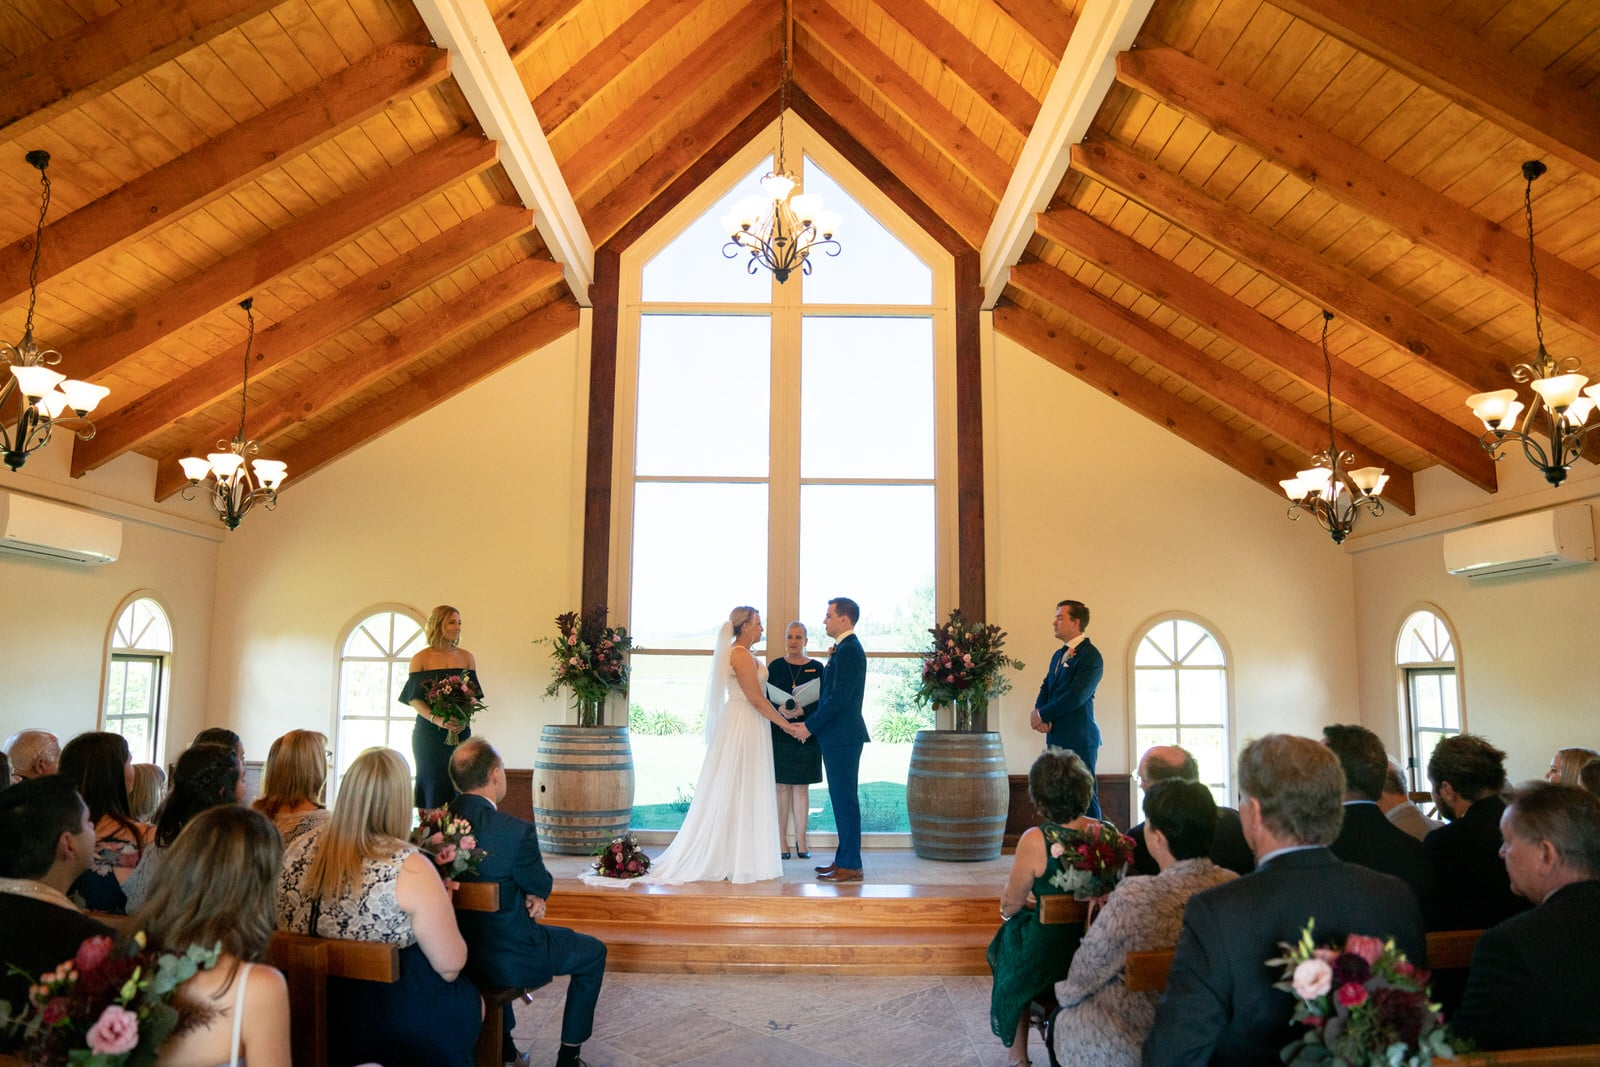 Wedding ceremony at Immerse Yarra Valley